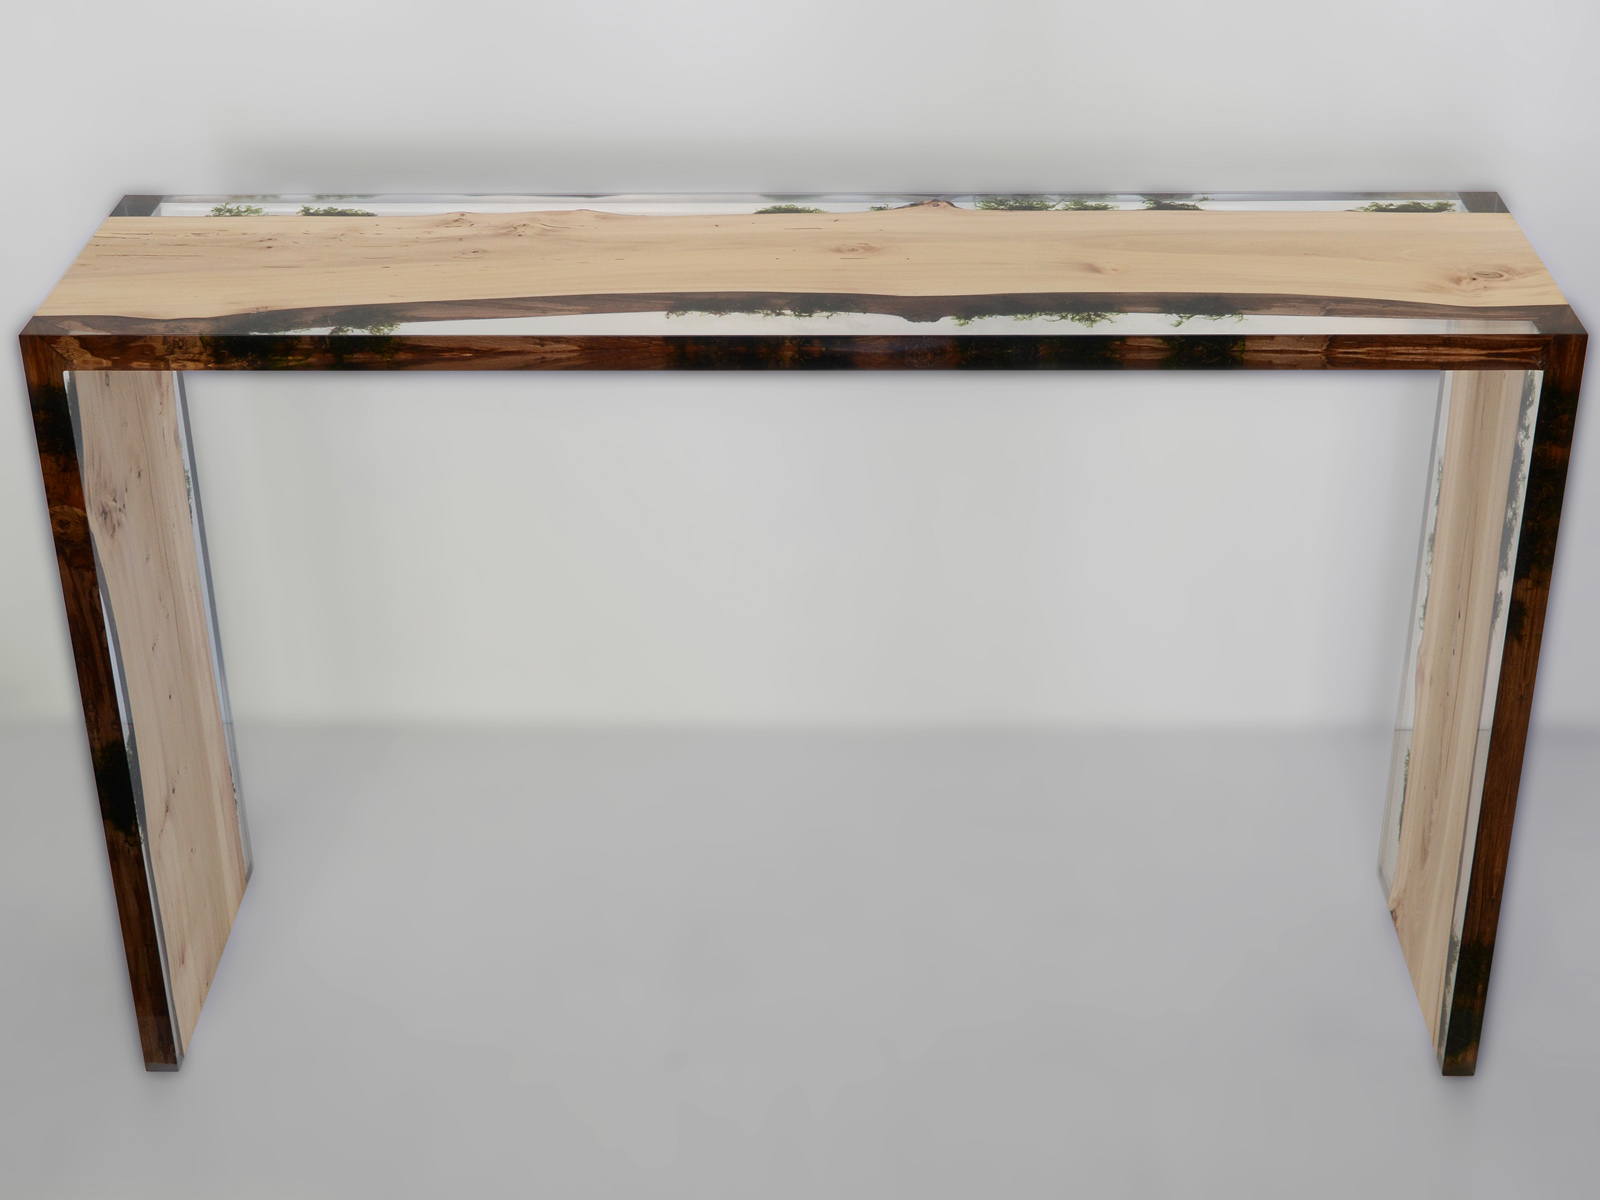 Alcarol Undergrowth Collection - Trail Console sans stool - 2